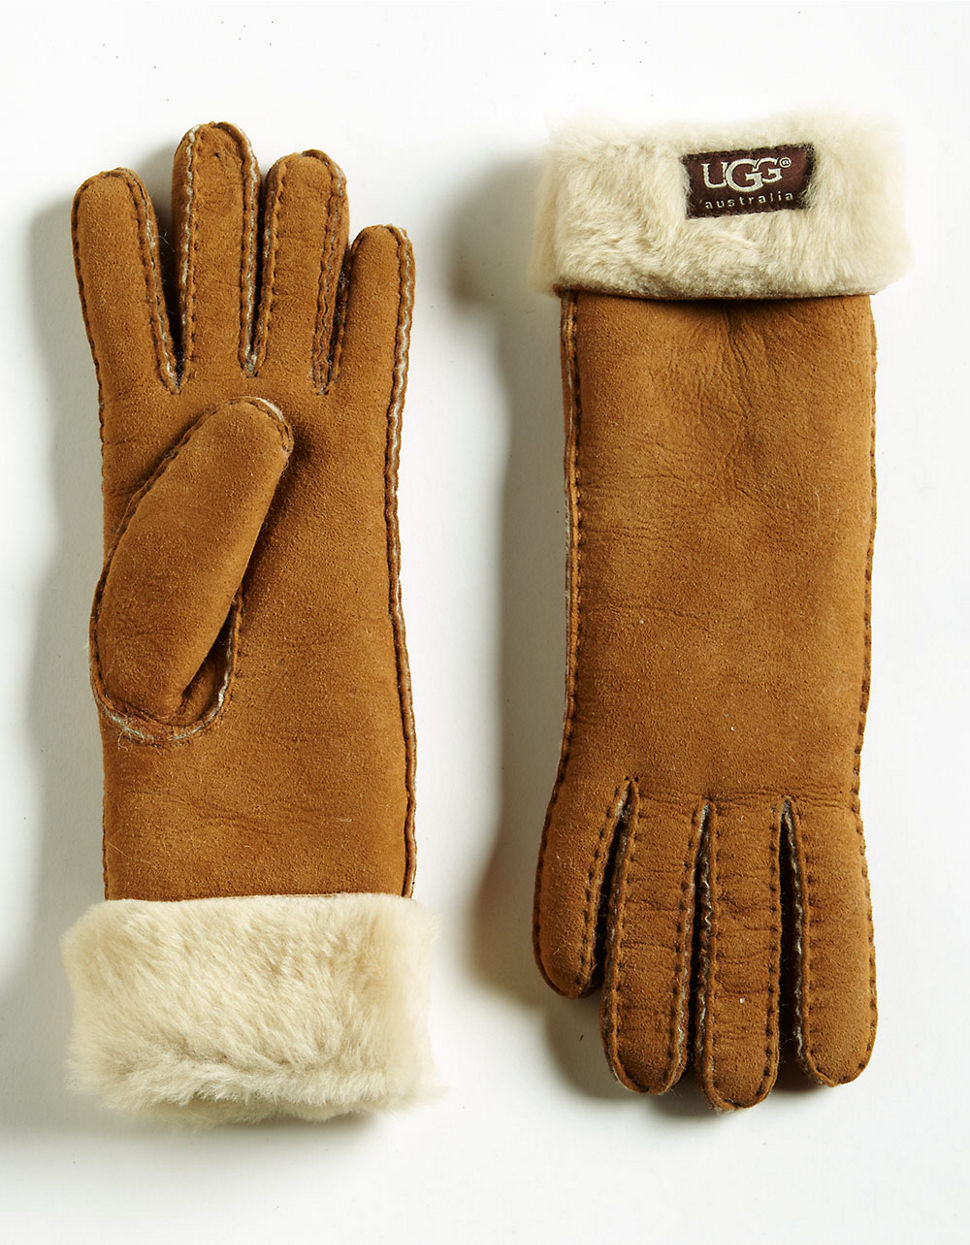 ugg bags and gloves